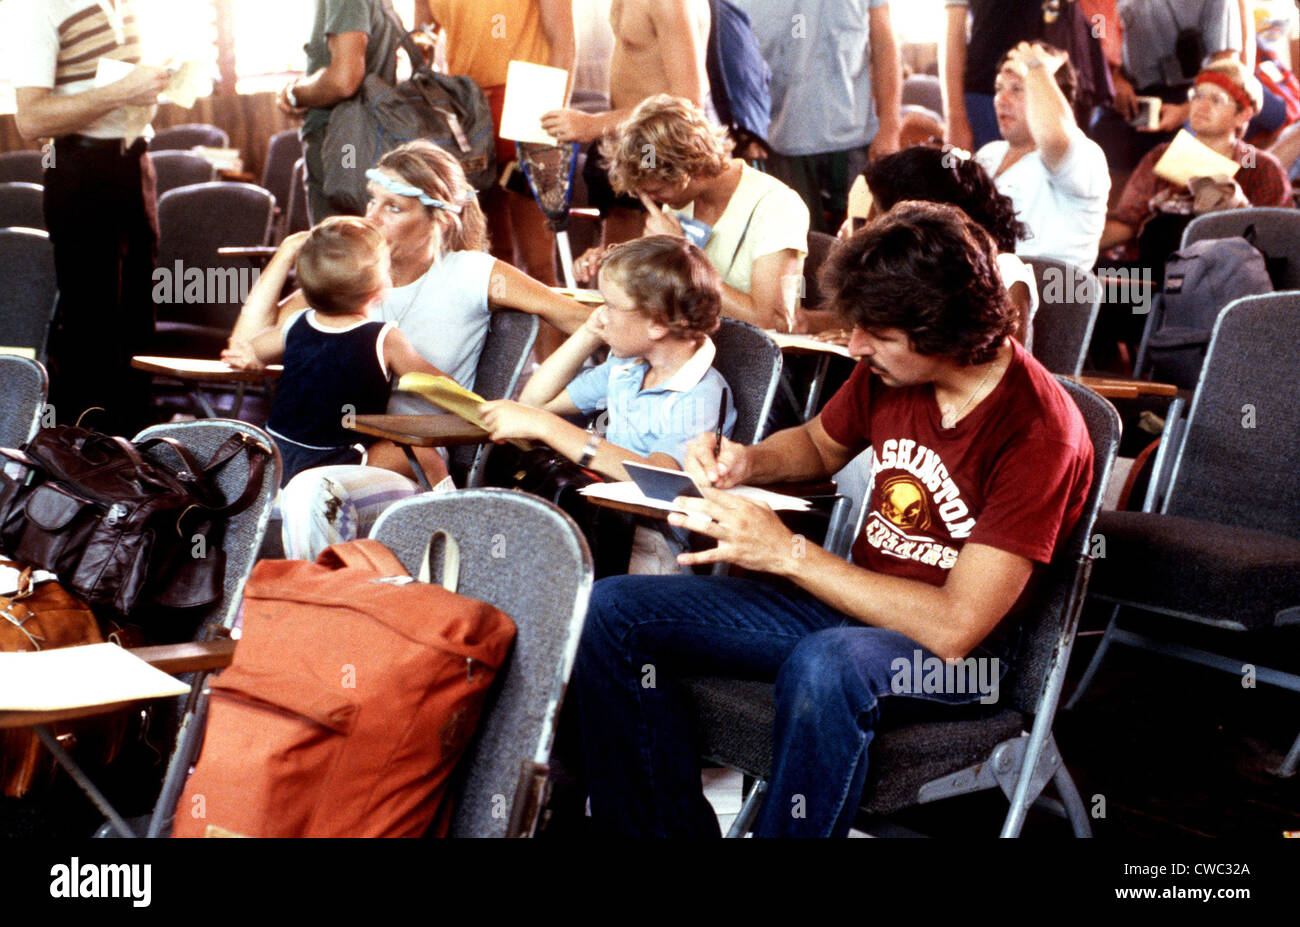 U.S. civilians awaiting evacuation from Grenada during the October 1983 U.S. invasion. American medical students - Stock Image